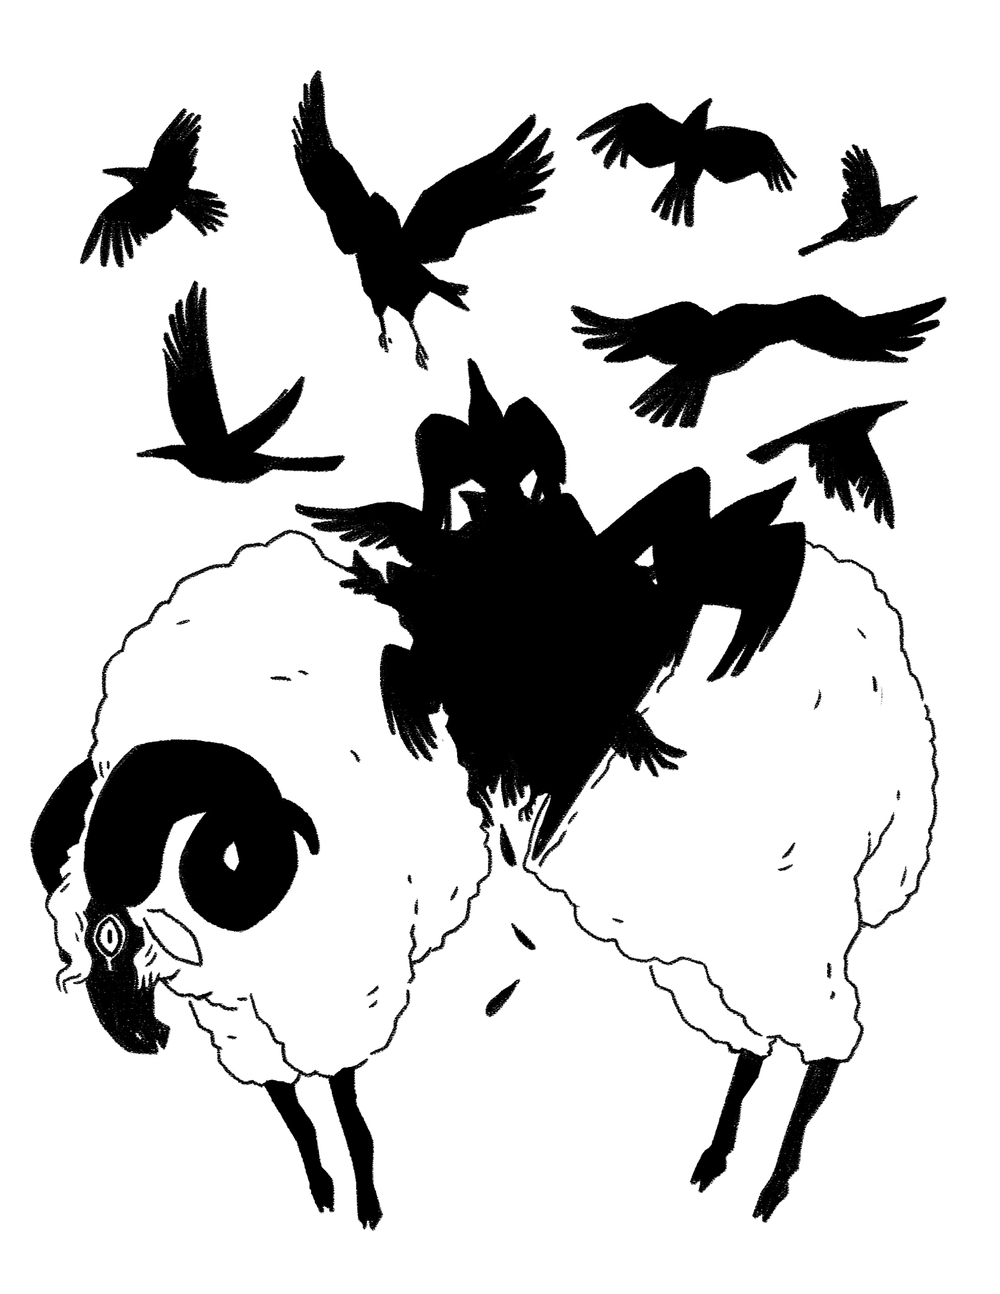 zodiac_0017_sheep.jpg